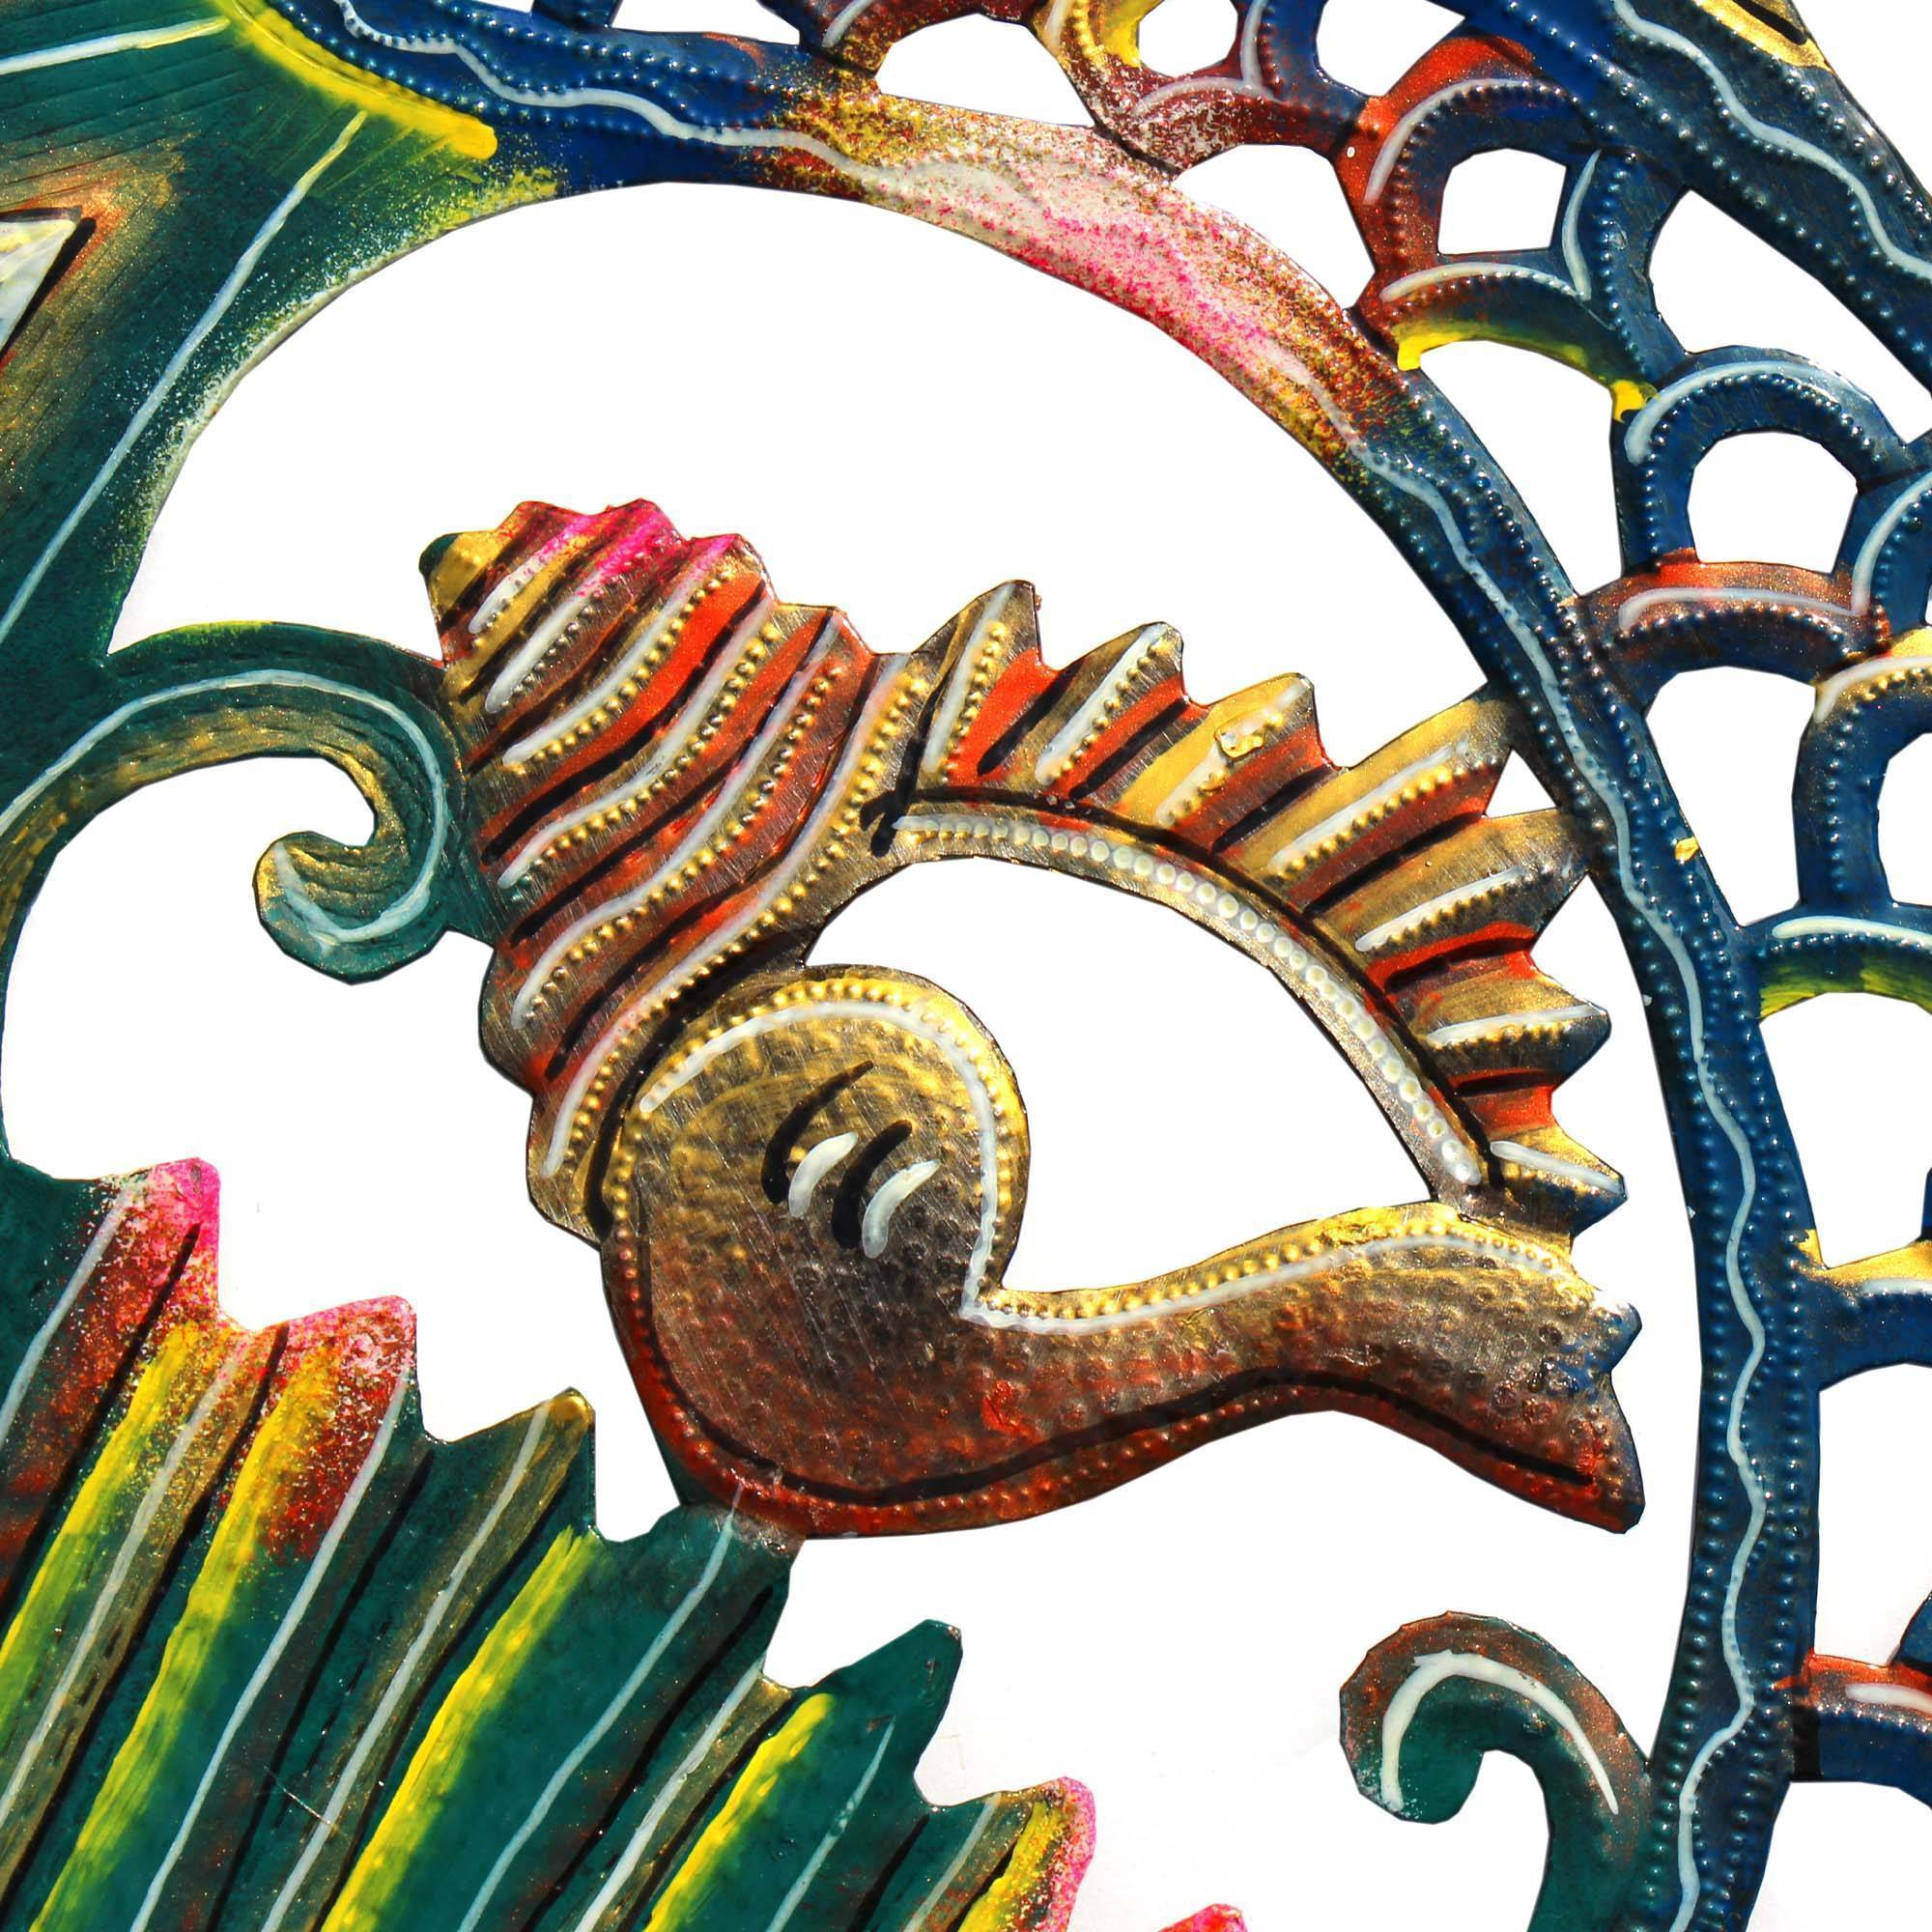 24 inch Painted Fish & Shell - Caribbean Craft image 4